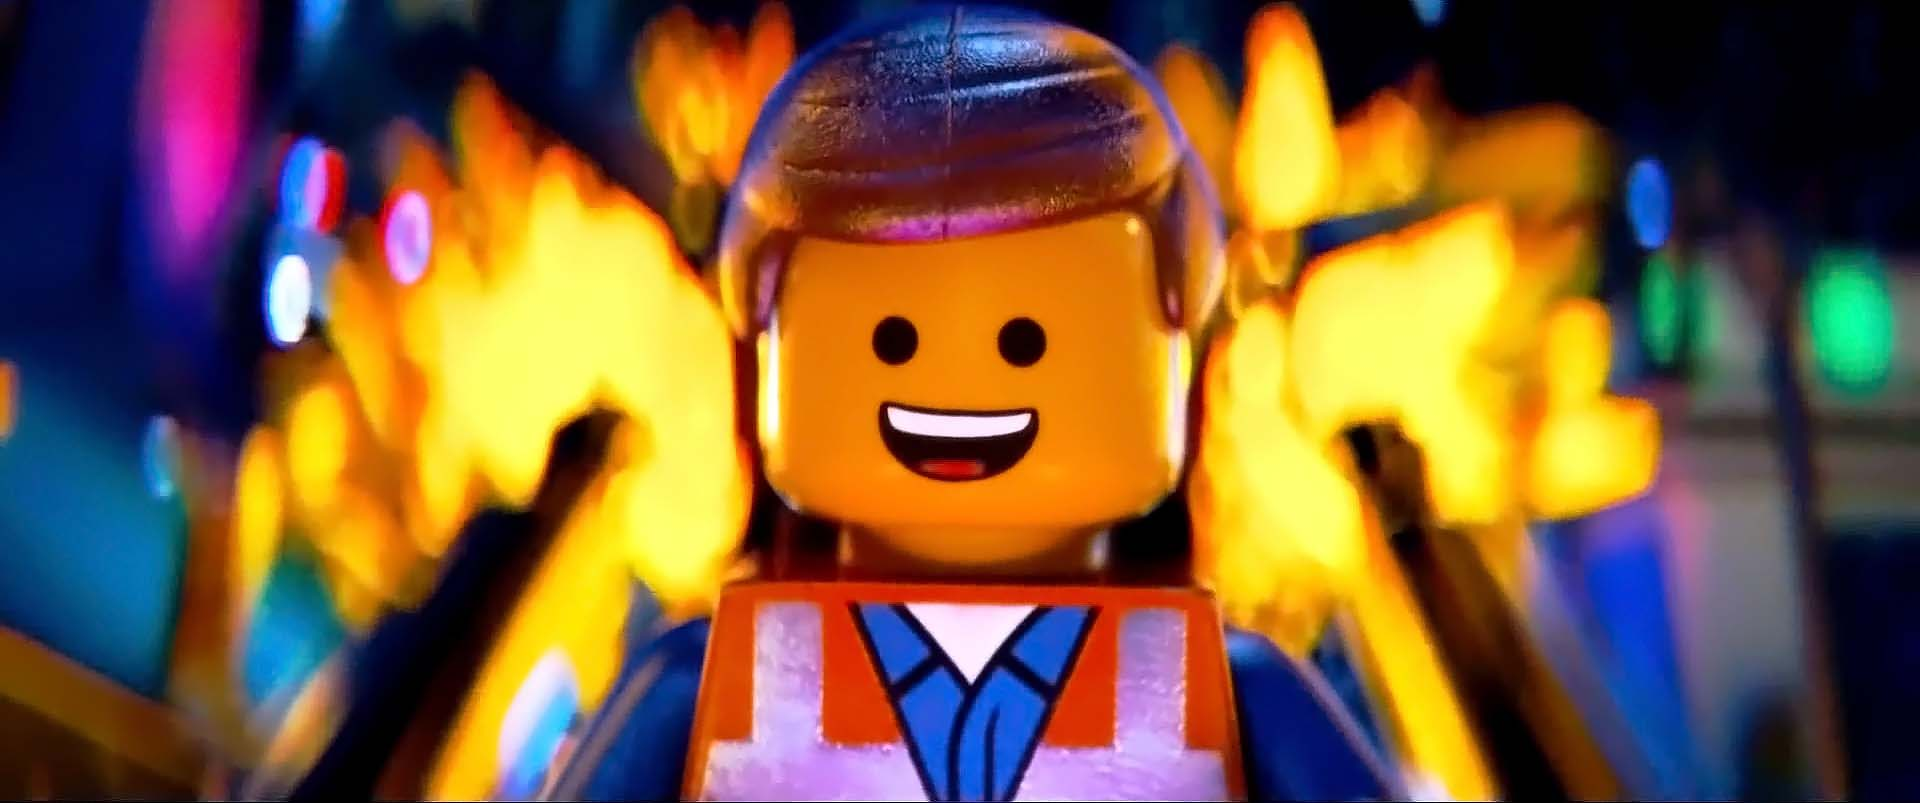 gamepunchers_ep71_lego_movie_videogame_wallpaper_header.jpg